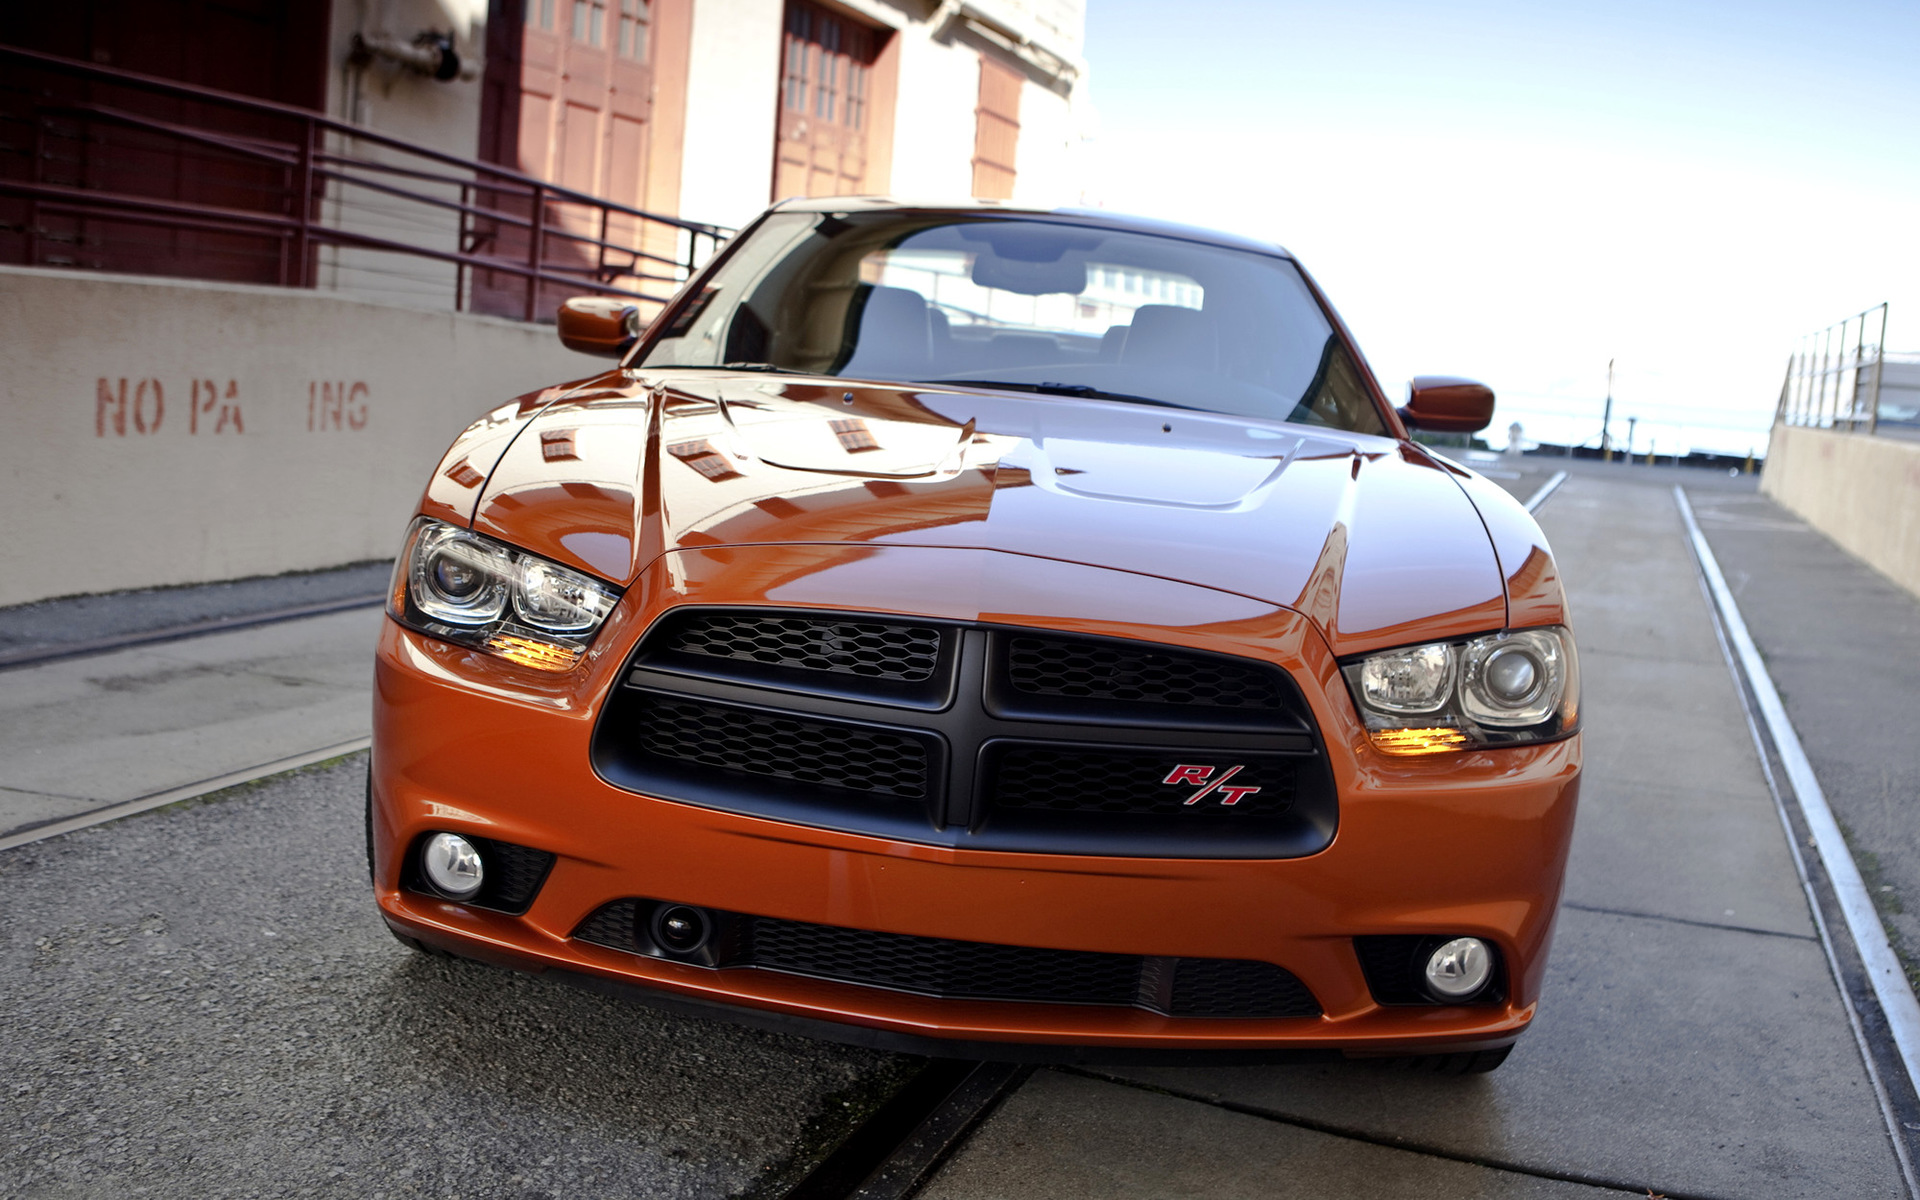 Dodge Charger R T Road & Track 2011 Wallpapers and HD Car